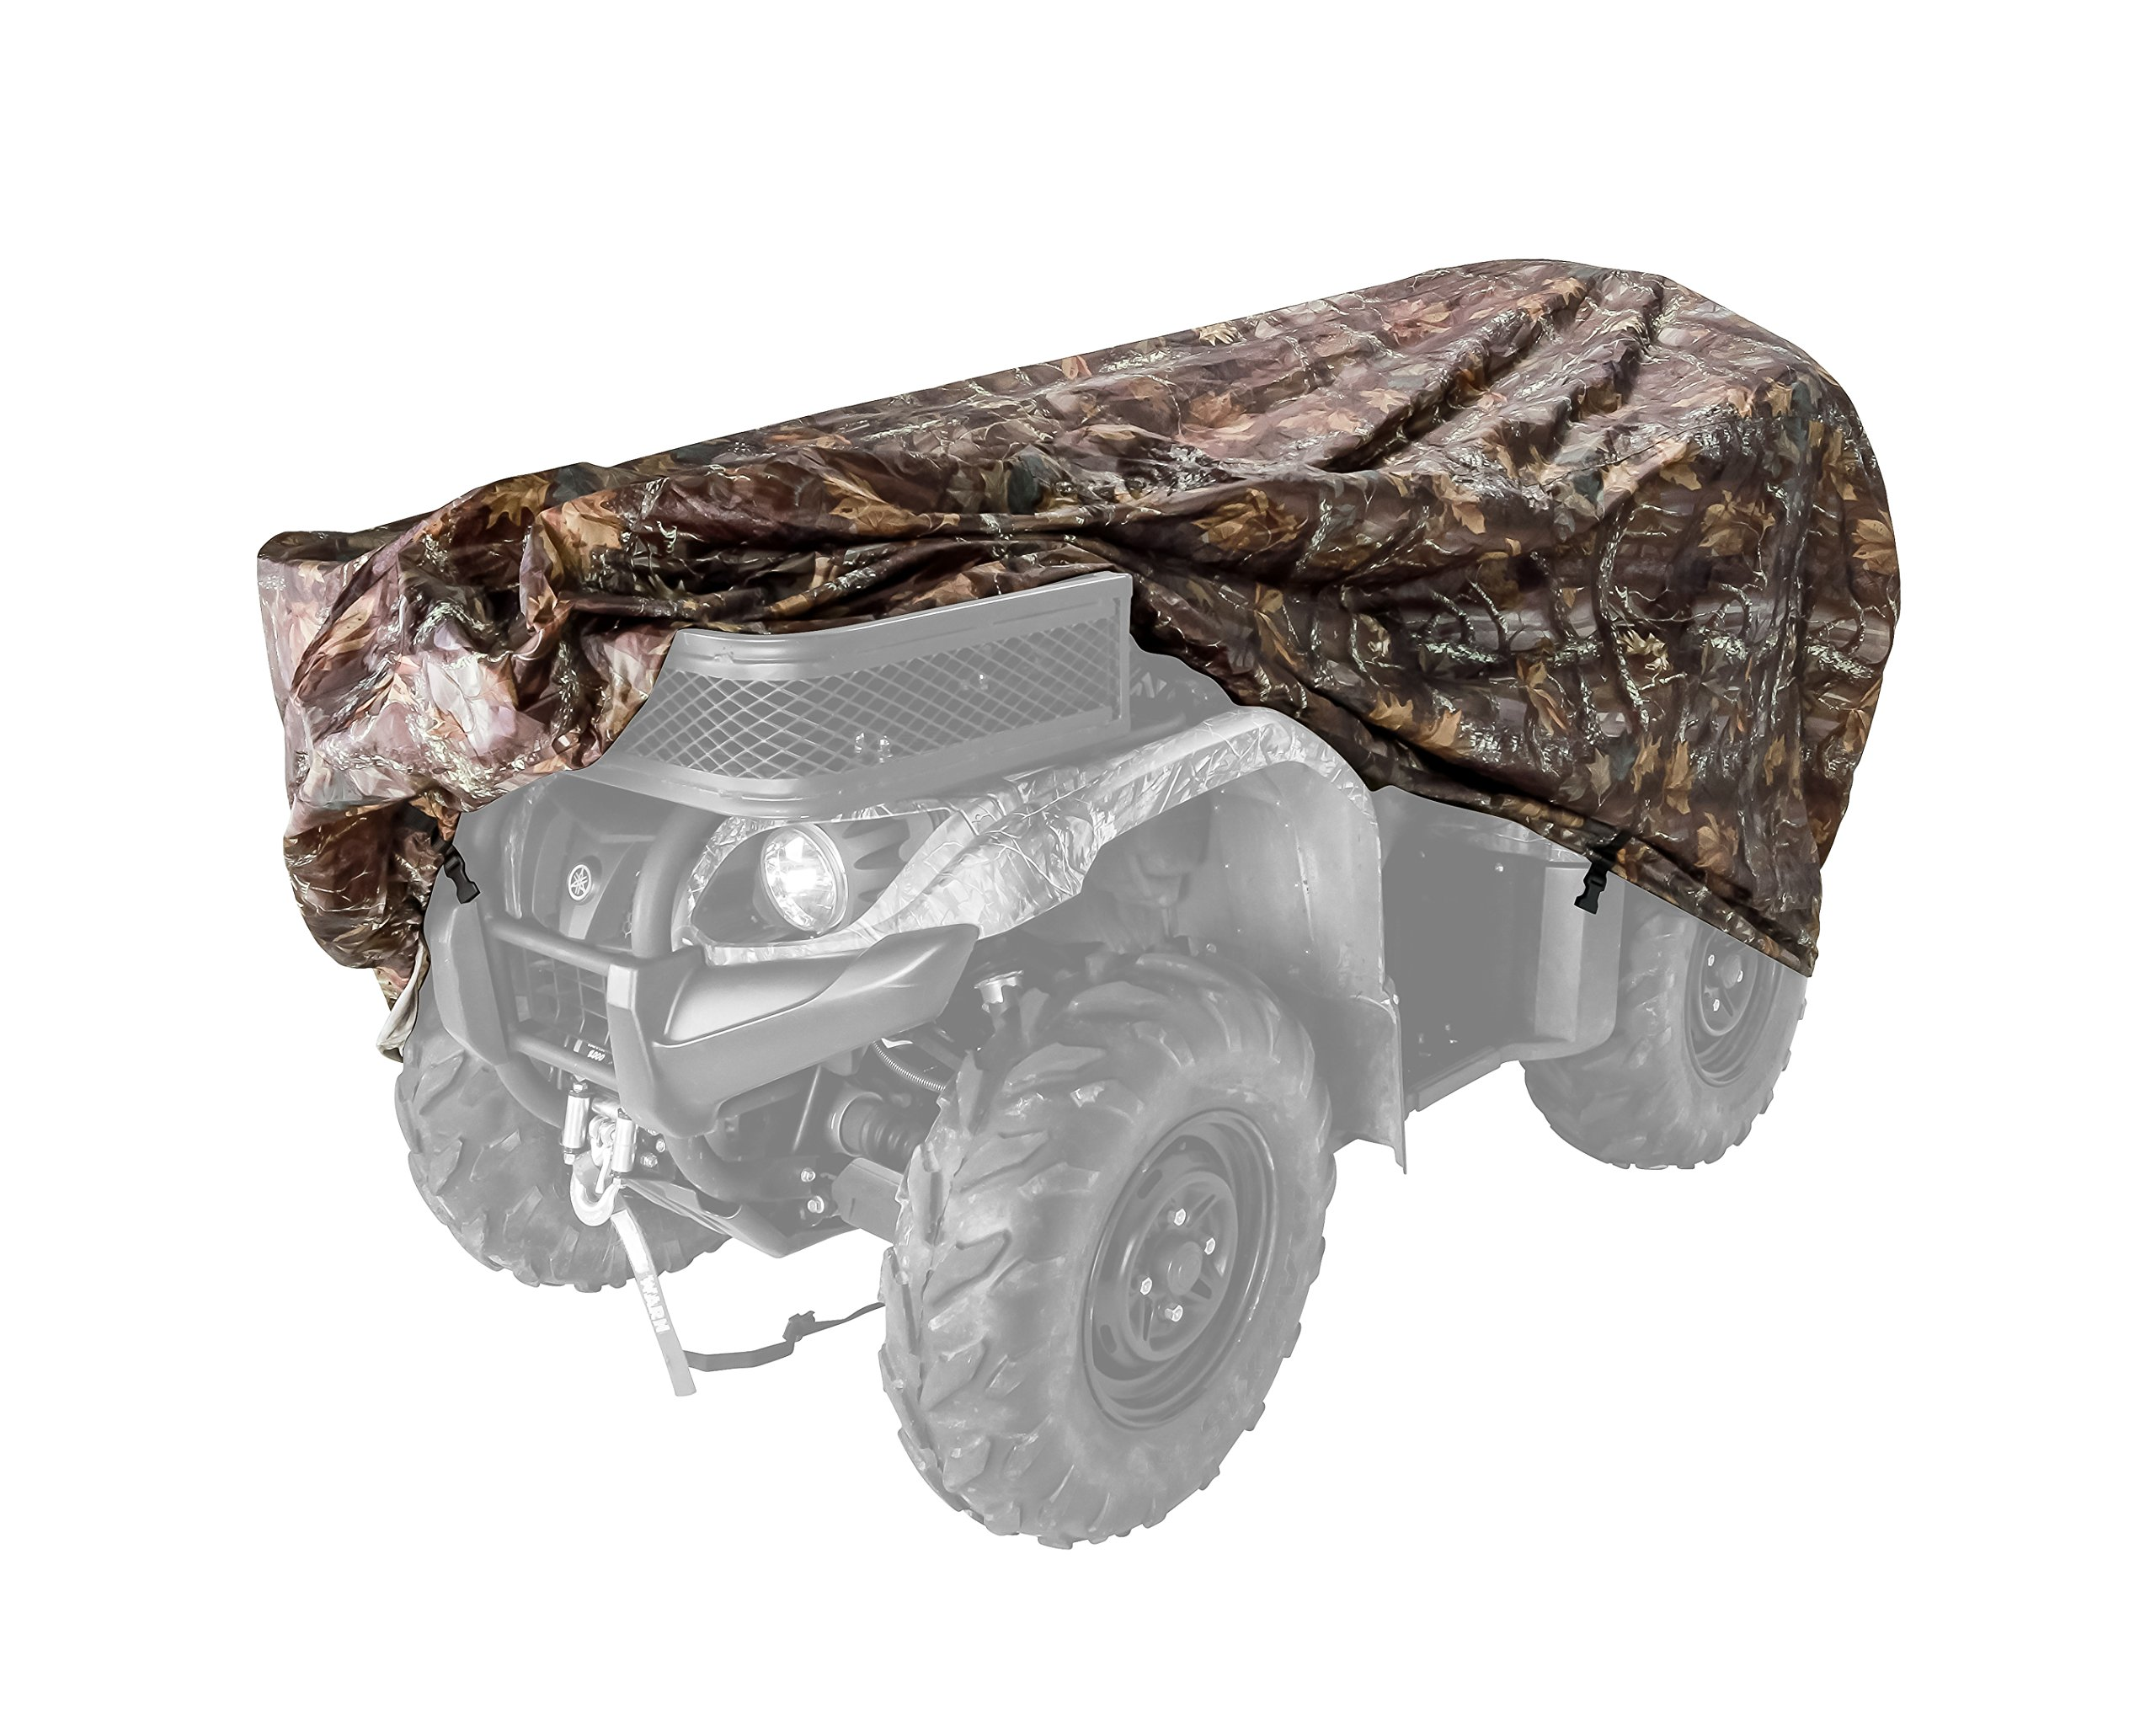 Black Boar Extra Large ATV Cover (450cc and Up) - Jungle Camo, Protect Your ATV from Rain, Snow, Dirt and Damaging UV Rays While in Storage (66021)